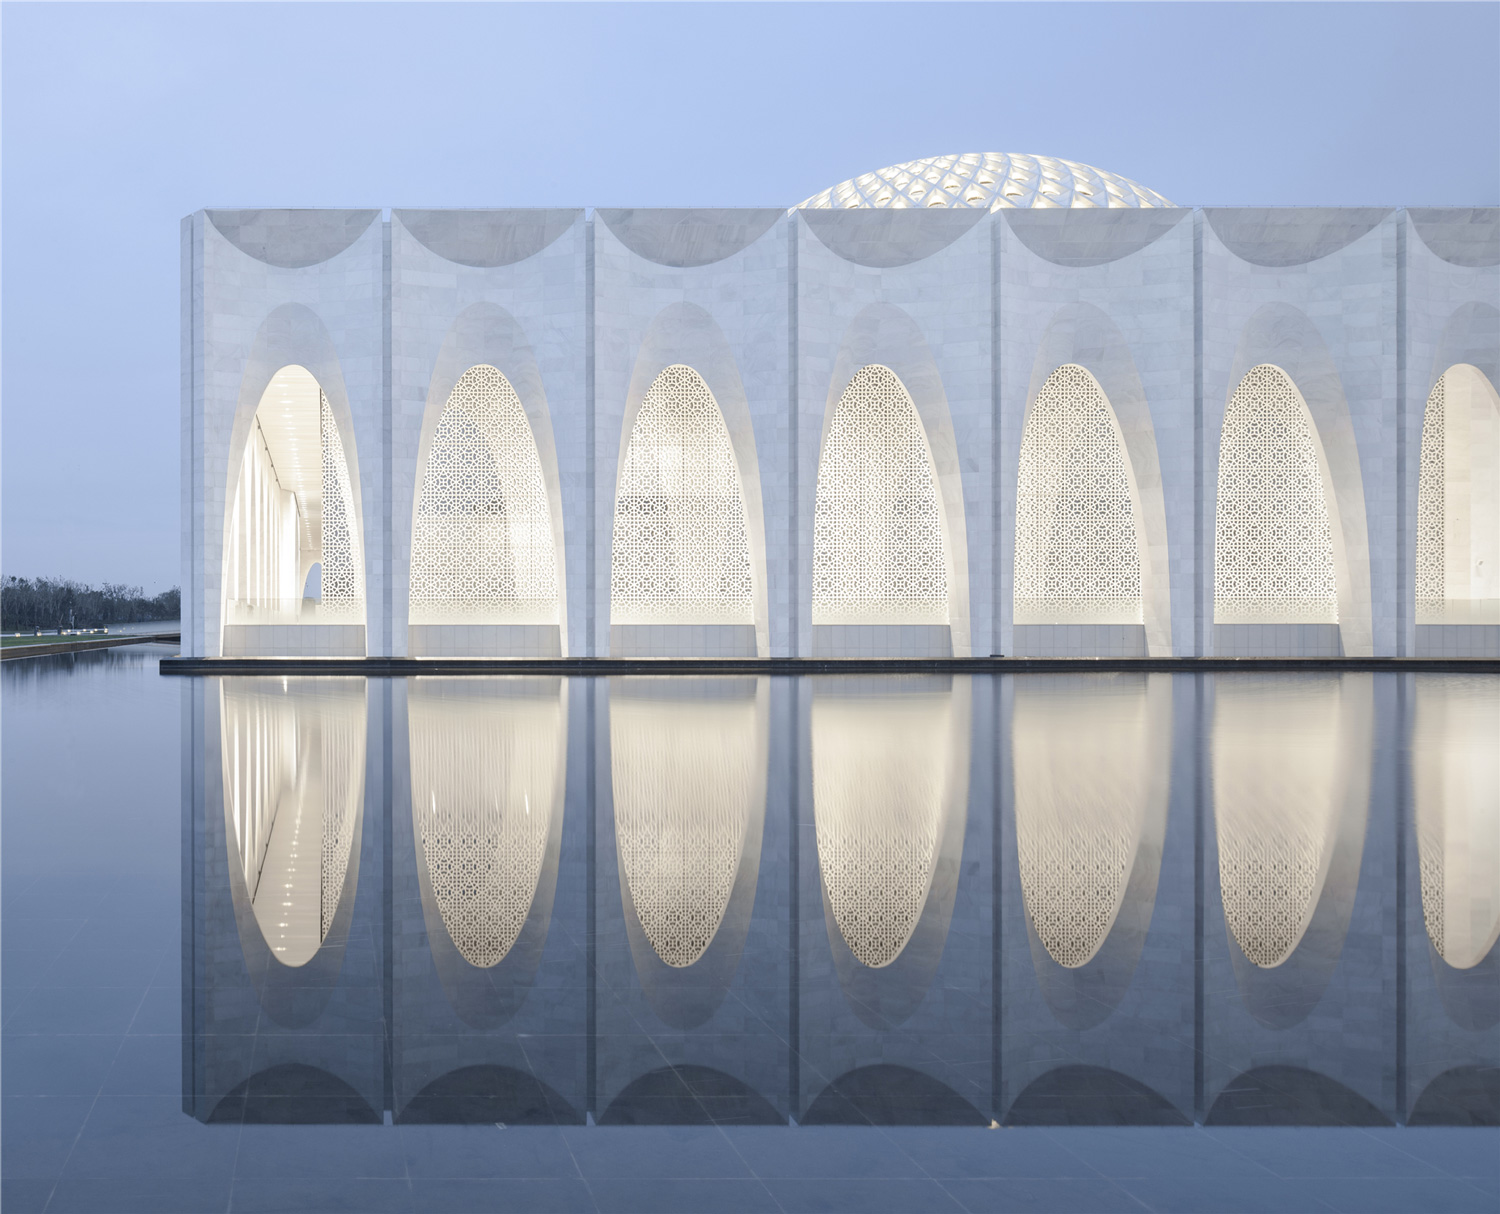 Da Chang Muslim Cultural Center by Architectural Design & Research Institute of SCUT | Yellowtrace